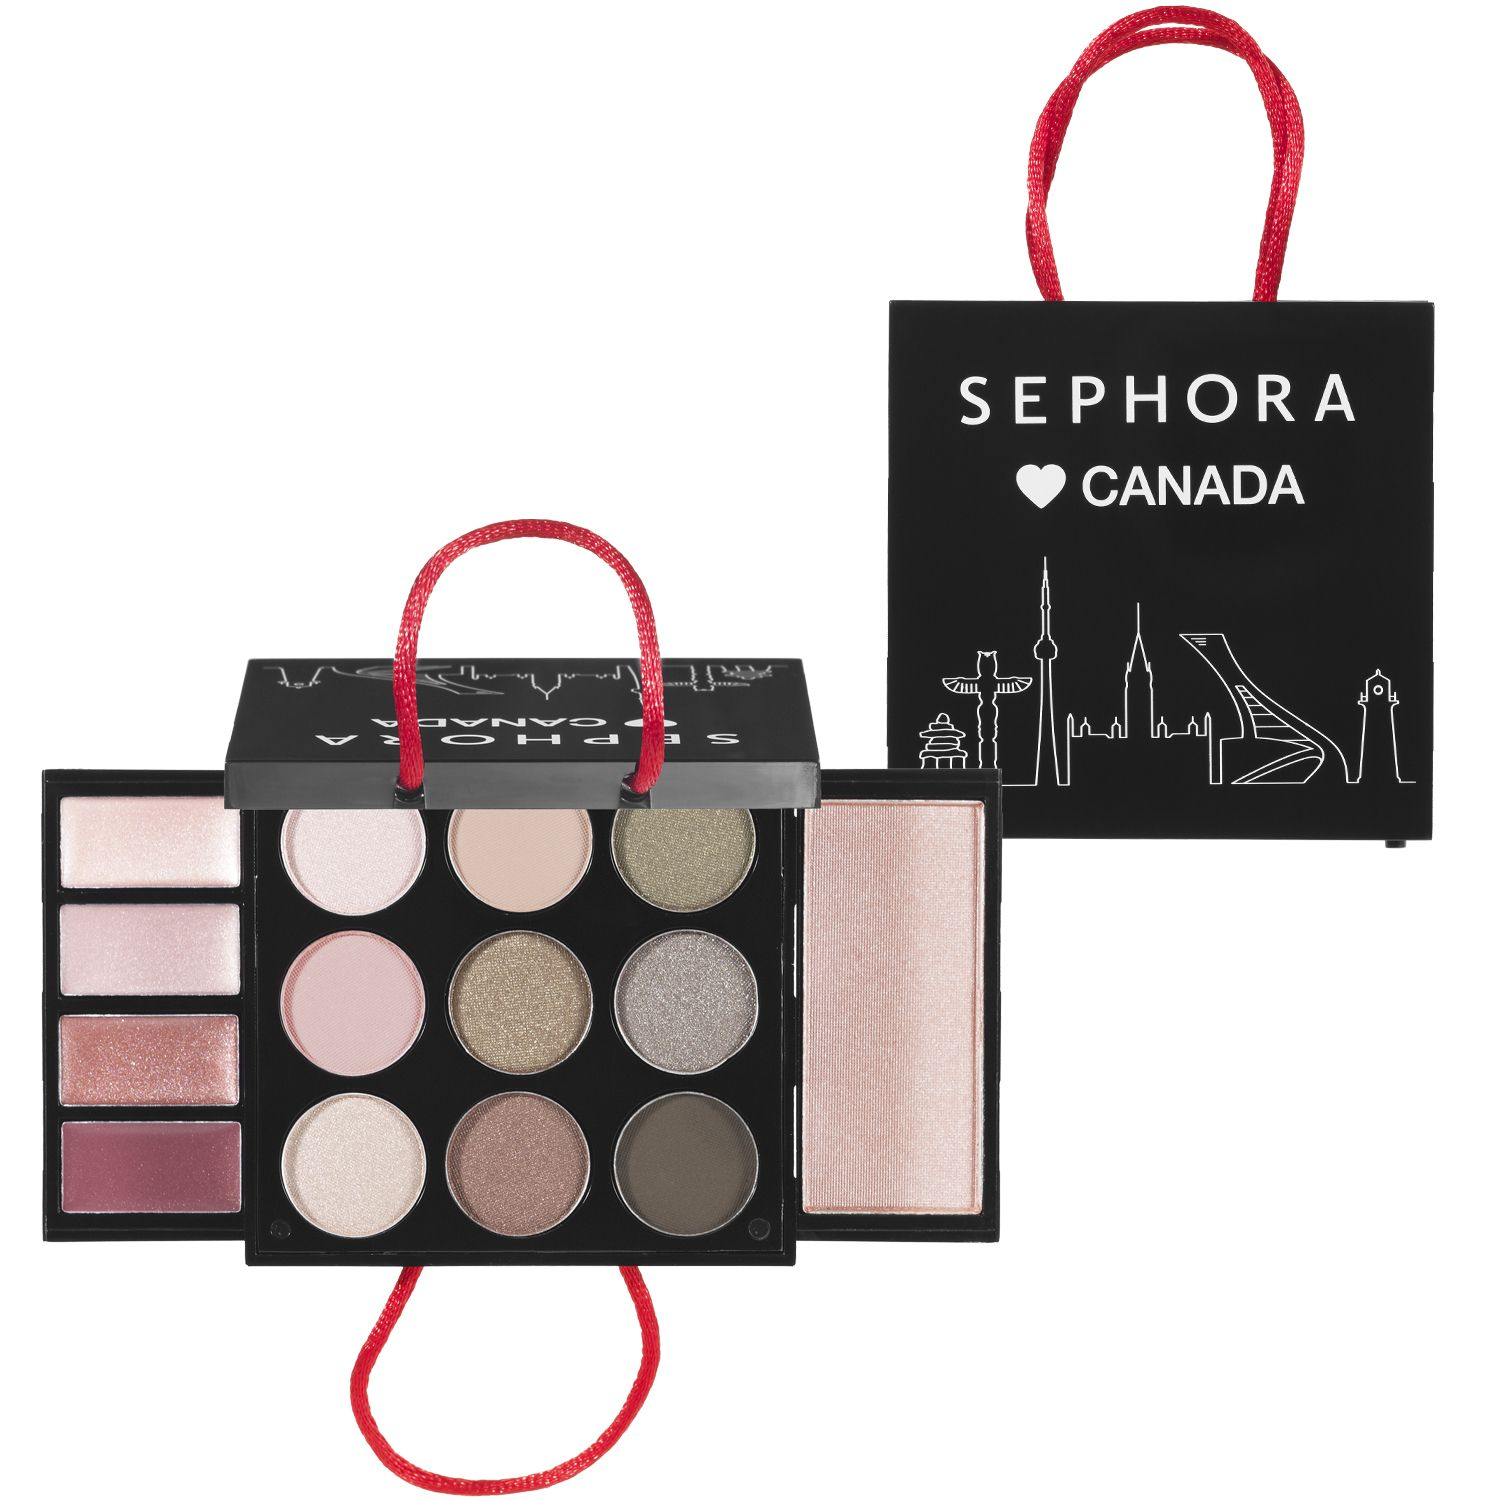 Sephora Loves Canada Makeup blog, Sephora, Eyeshadow